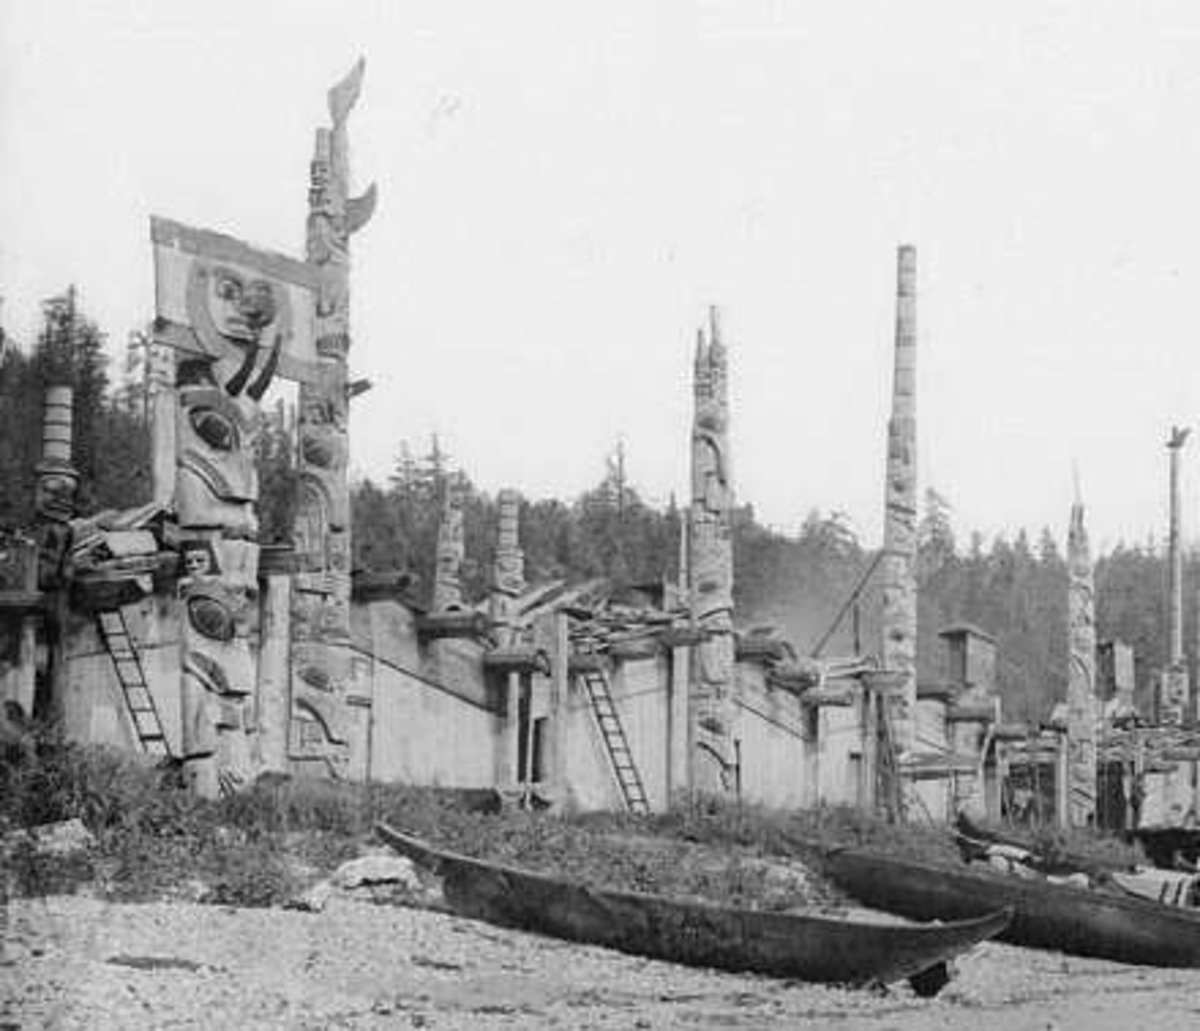 Haida Dwellings. Canadian public domain photo of 1878 by George Mercer Dawson (1849 - 1901).